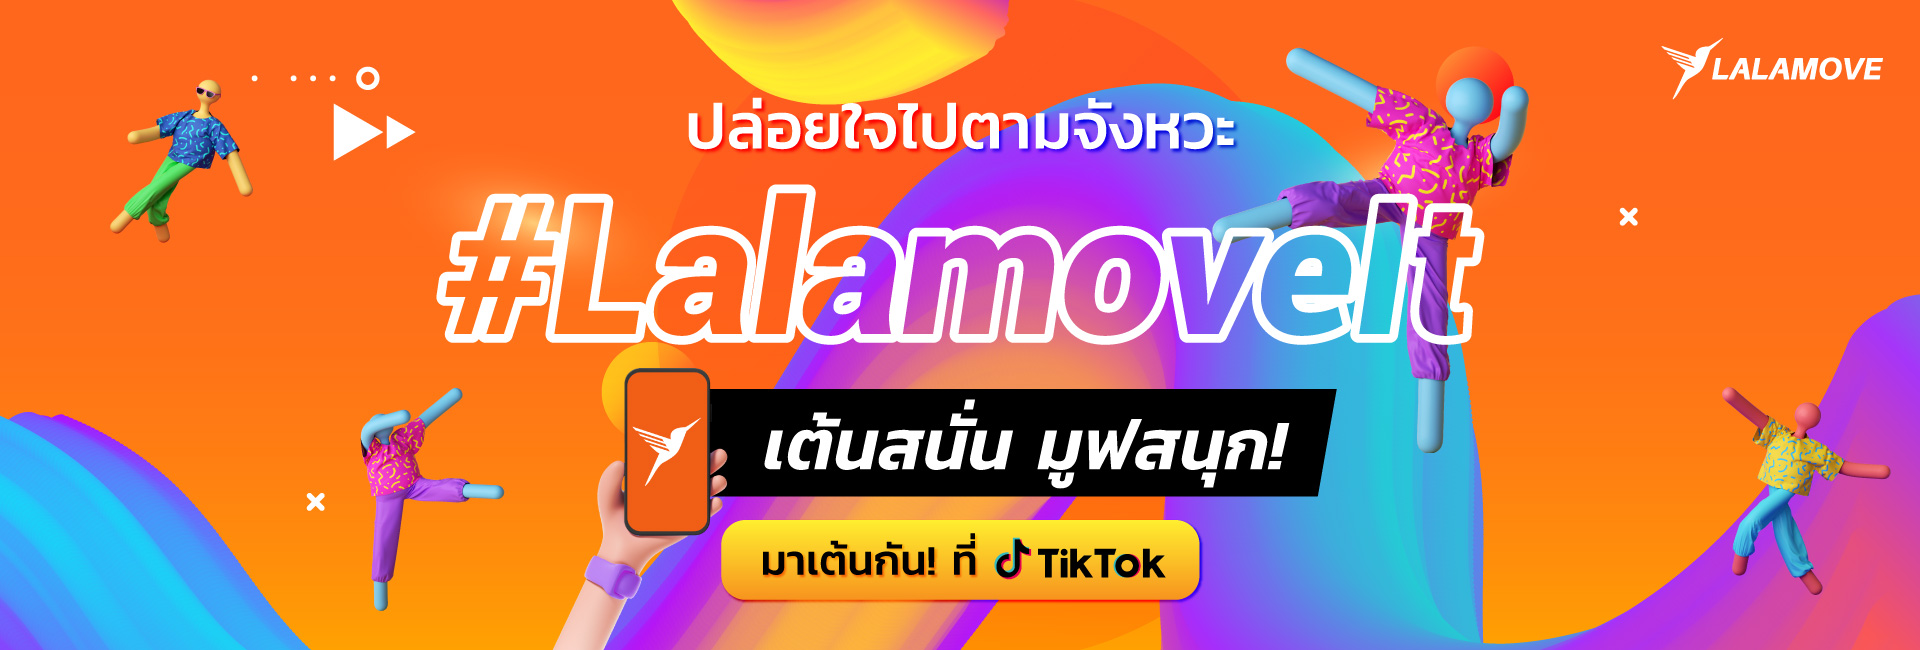 editHome-page-banner-1920x650